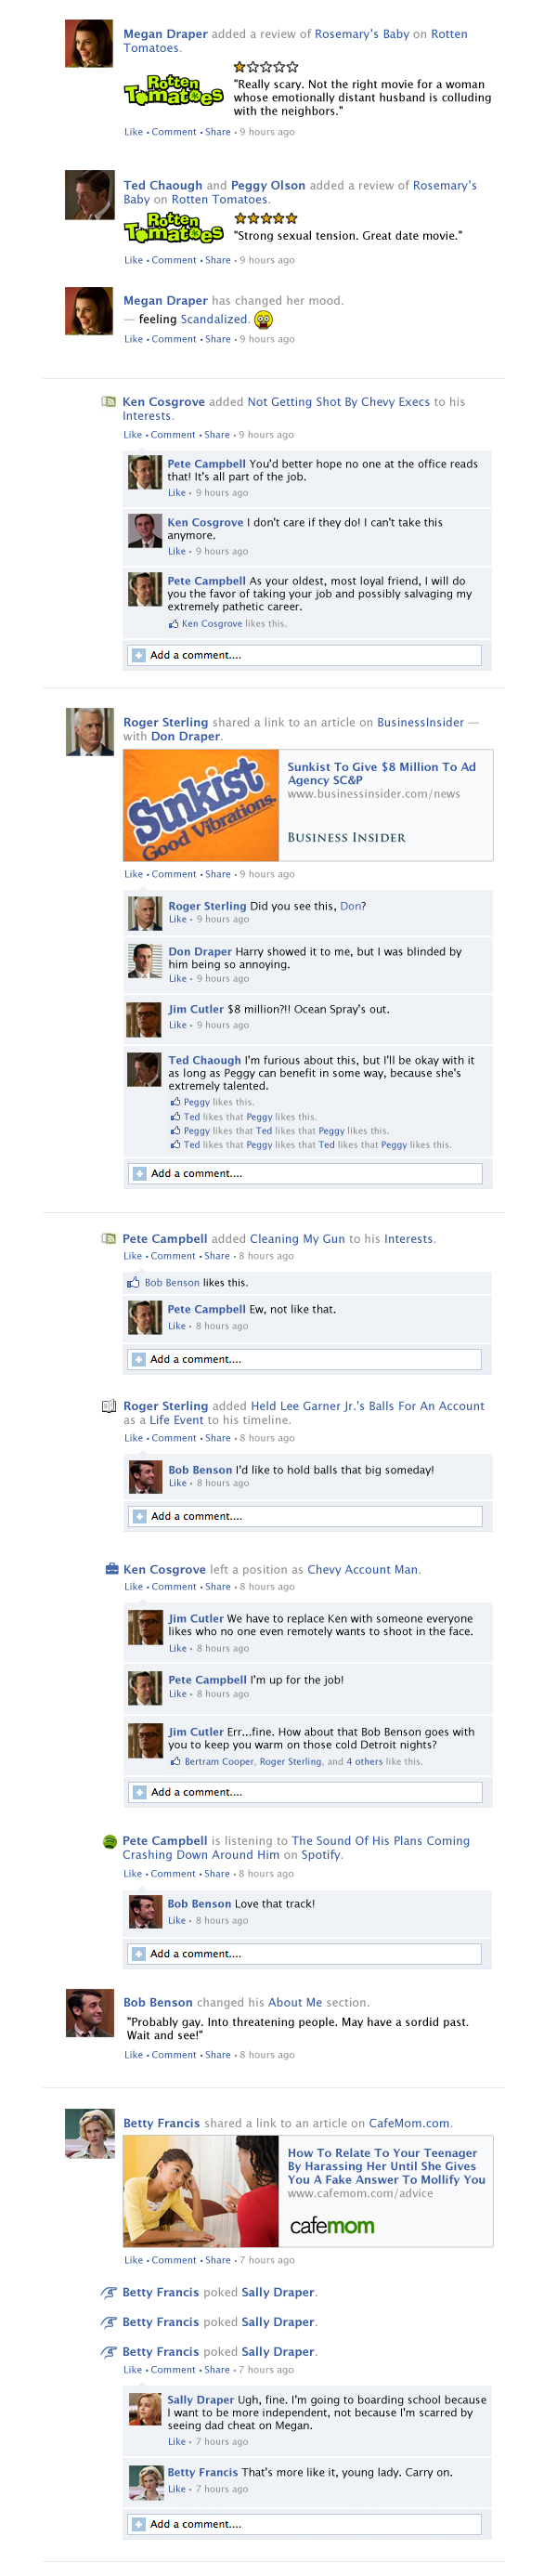 If Mad Men took place entirely on Facebook: Season 6, Episode 12.